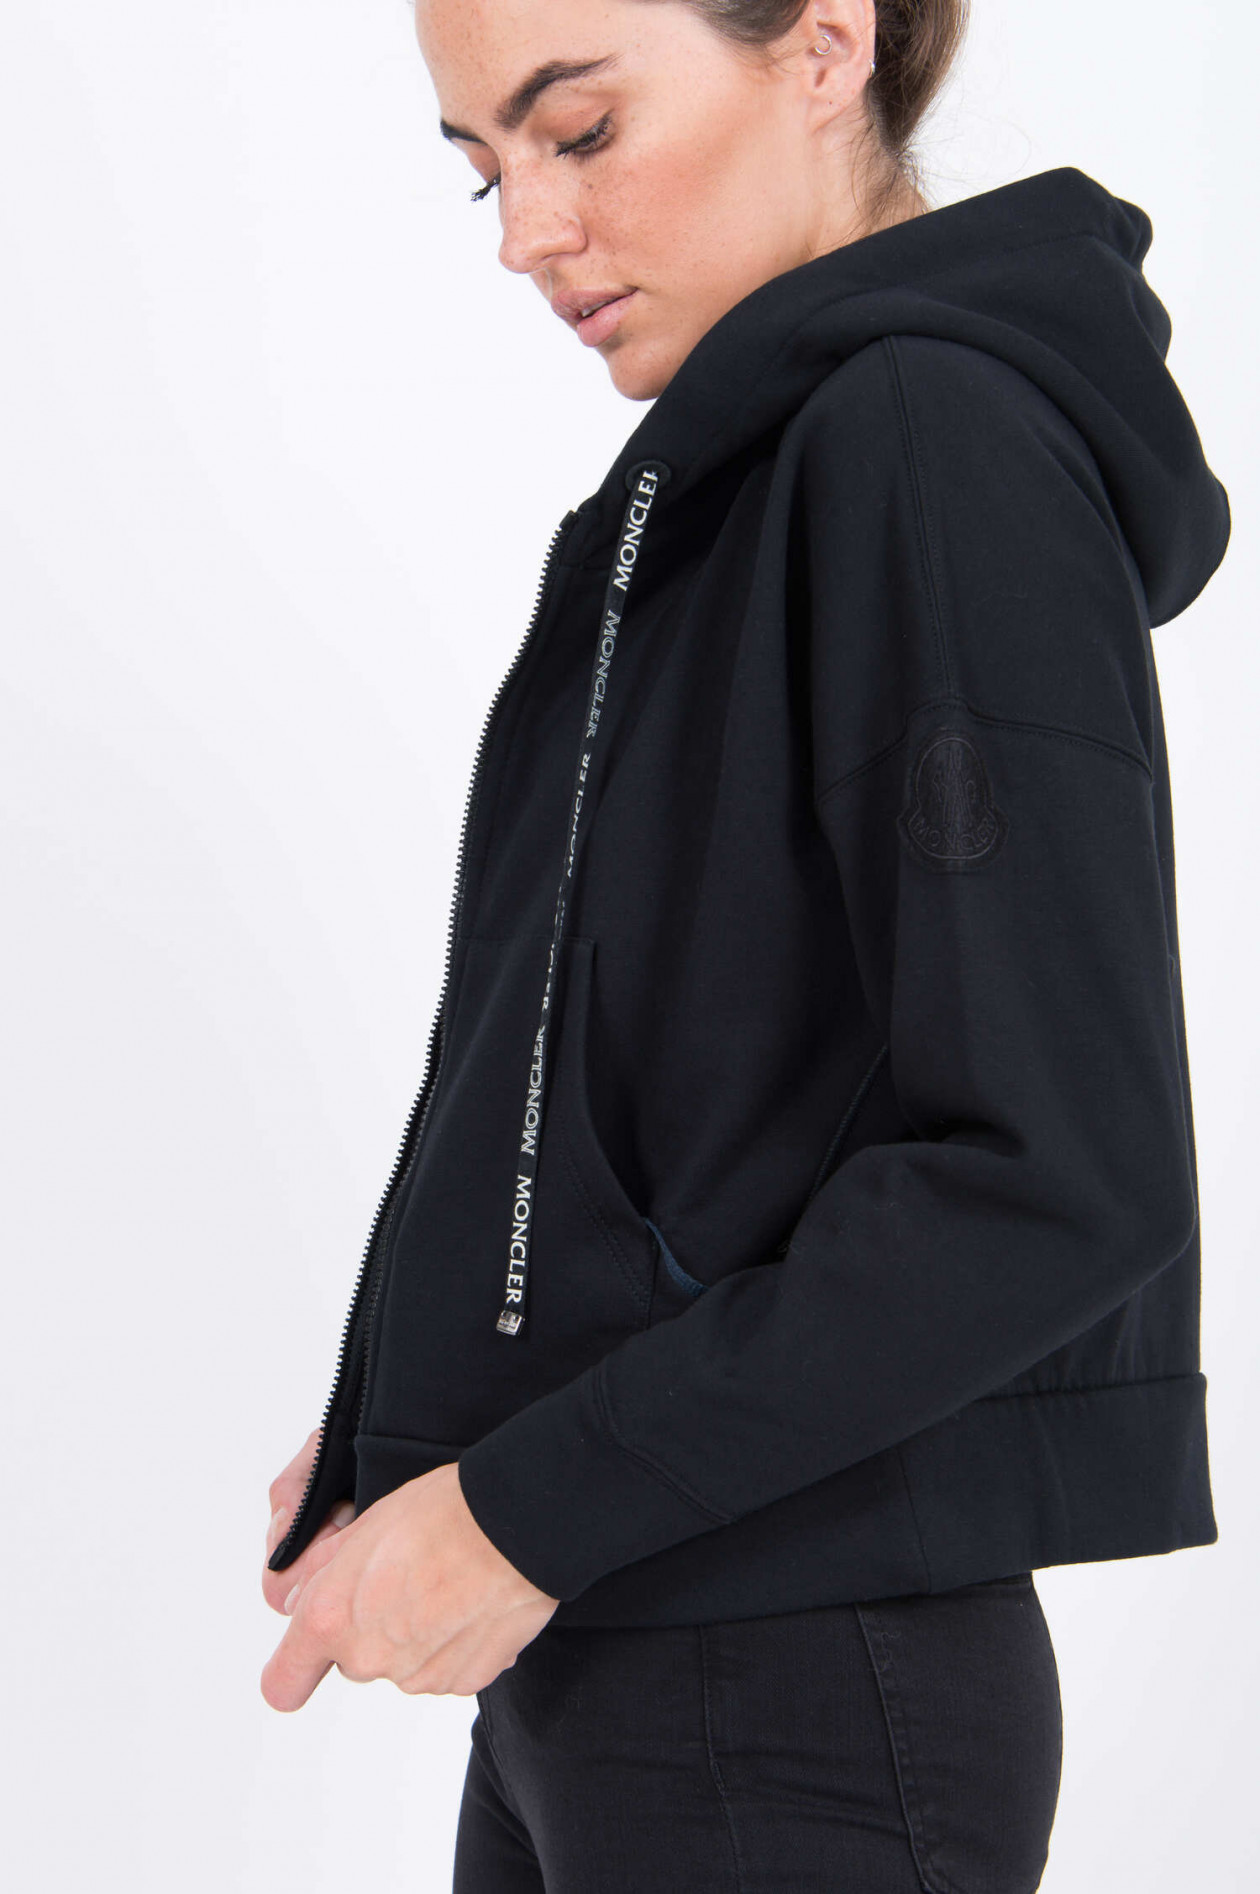 Sweatjacke in Schwarz